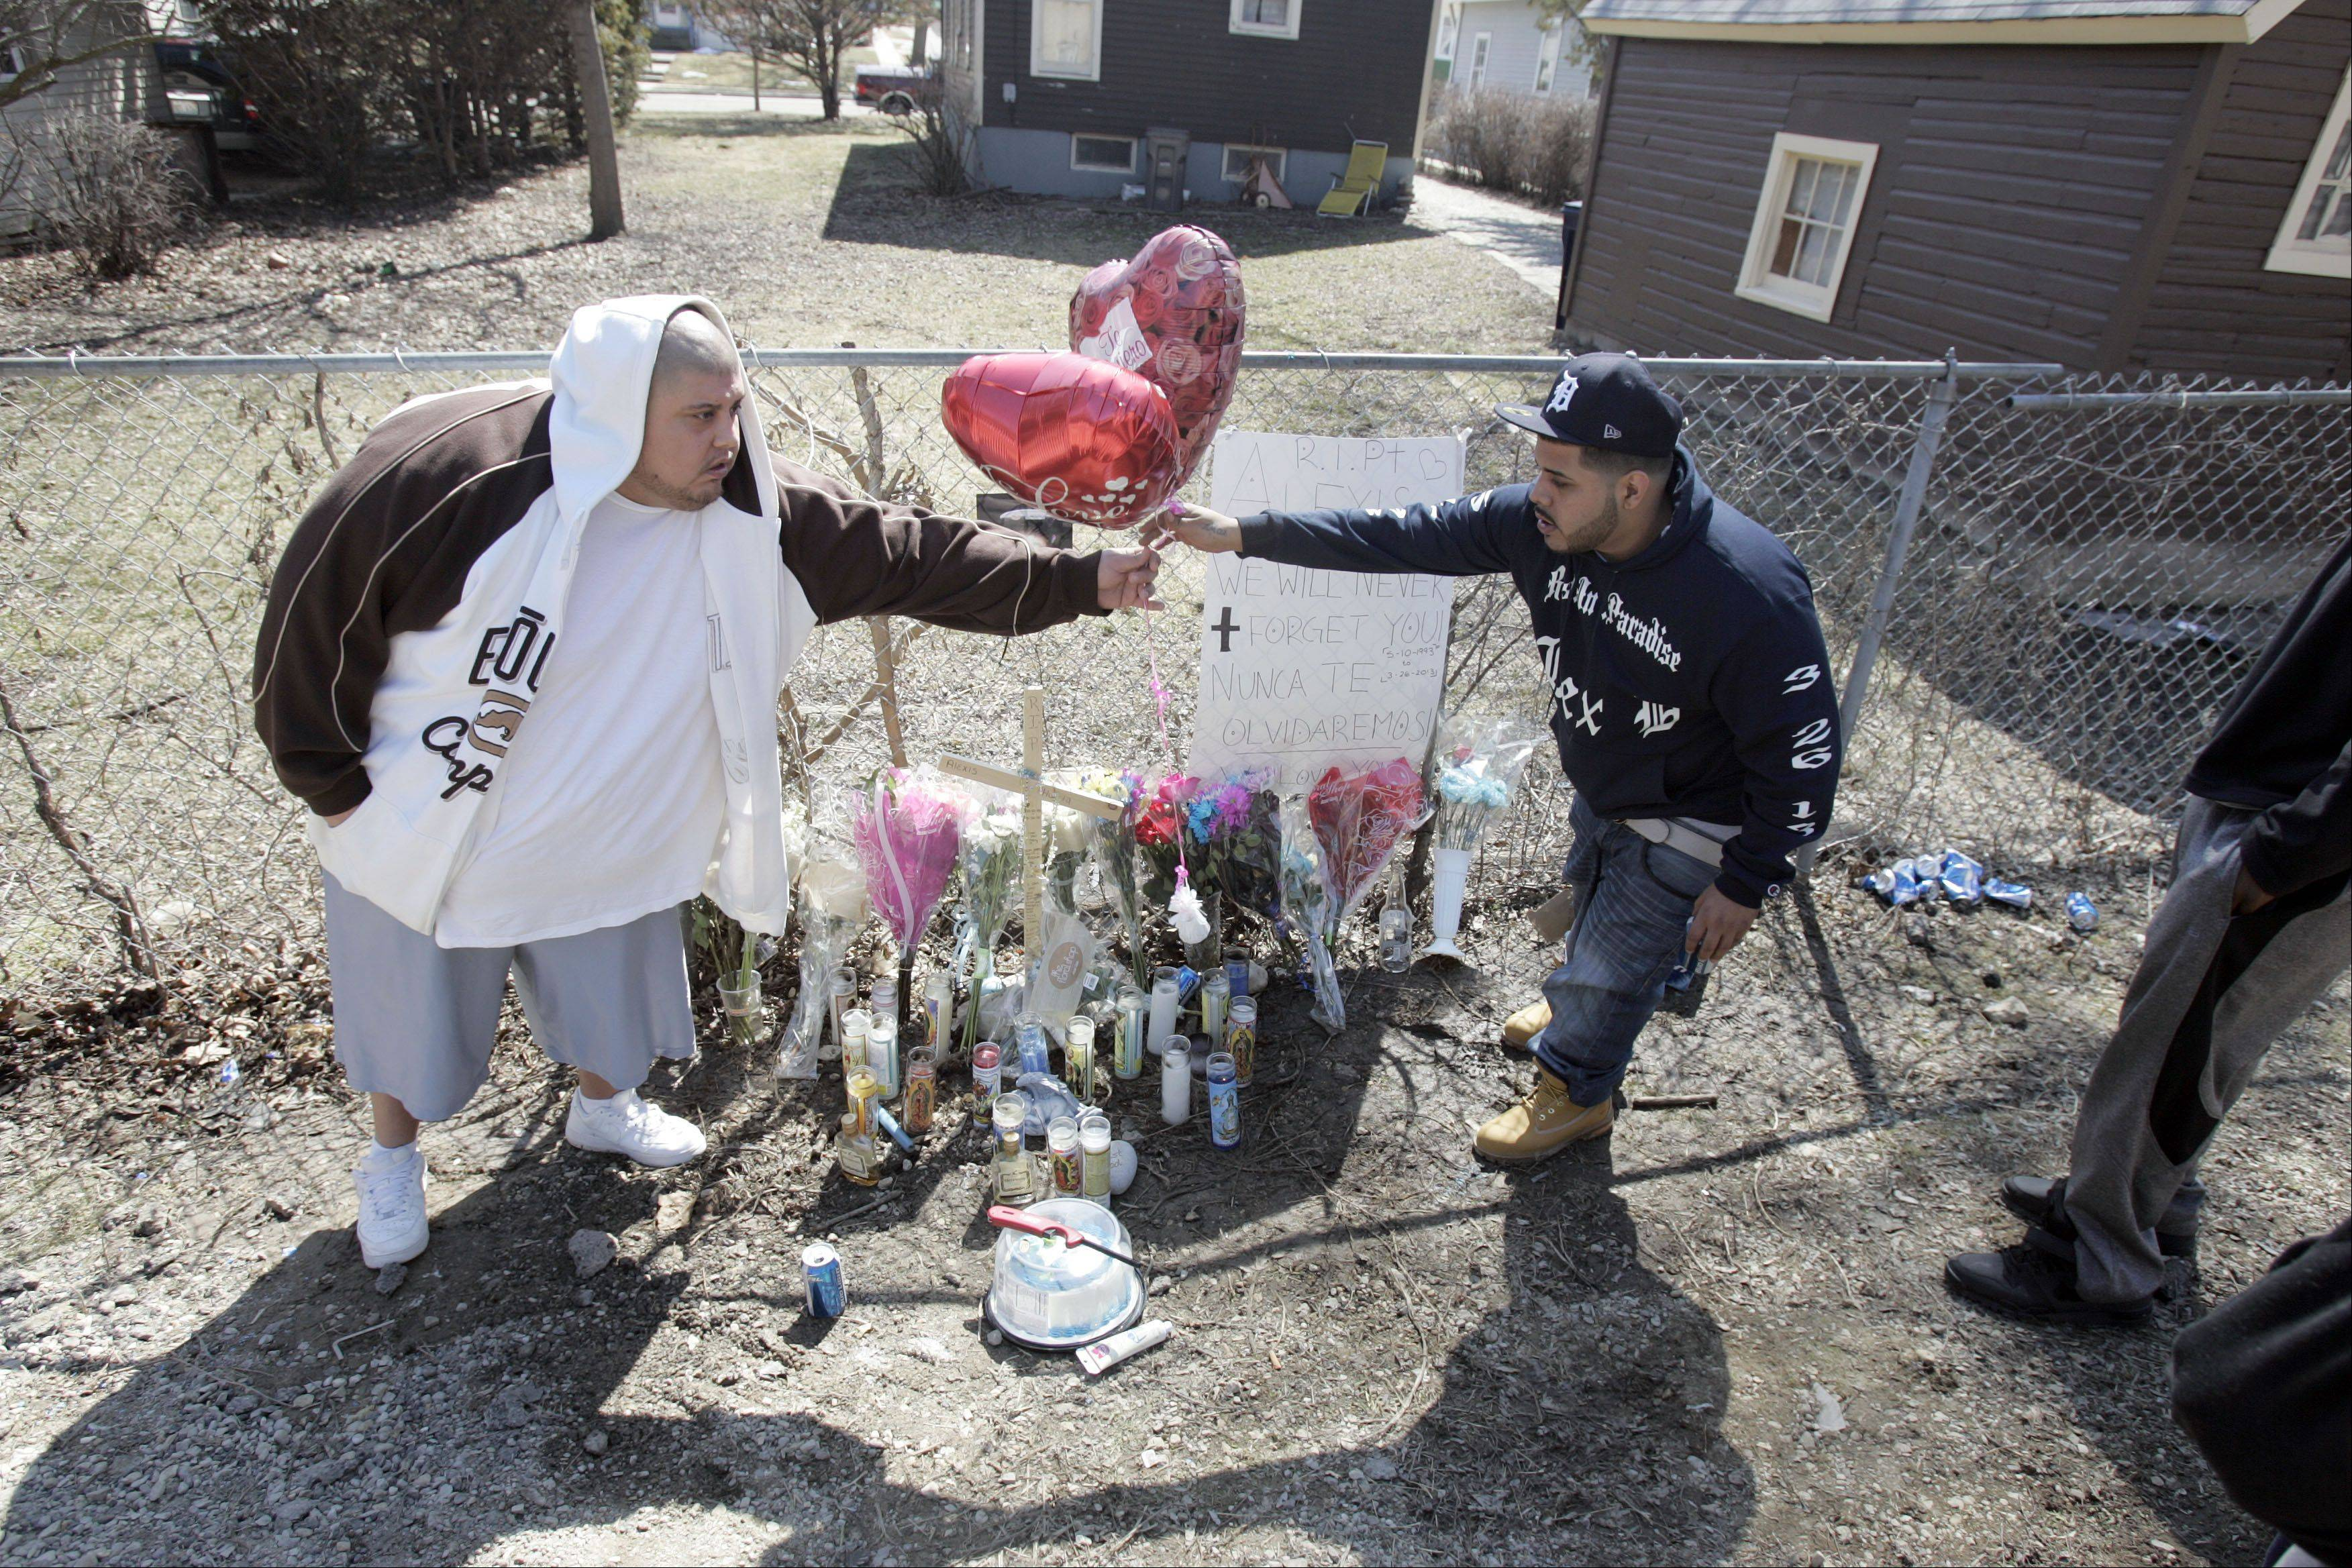 "Robert Trujillo, left, and Victor Anthony ""Vito"" Botti adjust some balloons at a memorial for their friend, 19-year-old Alexis Huerta, who was killed in a shooting Tuesday night in Elgin. The memorial is in the 200 block of Silver Court, where Huerta was found shot."